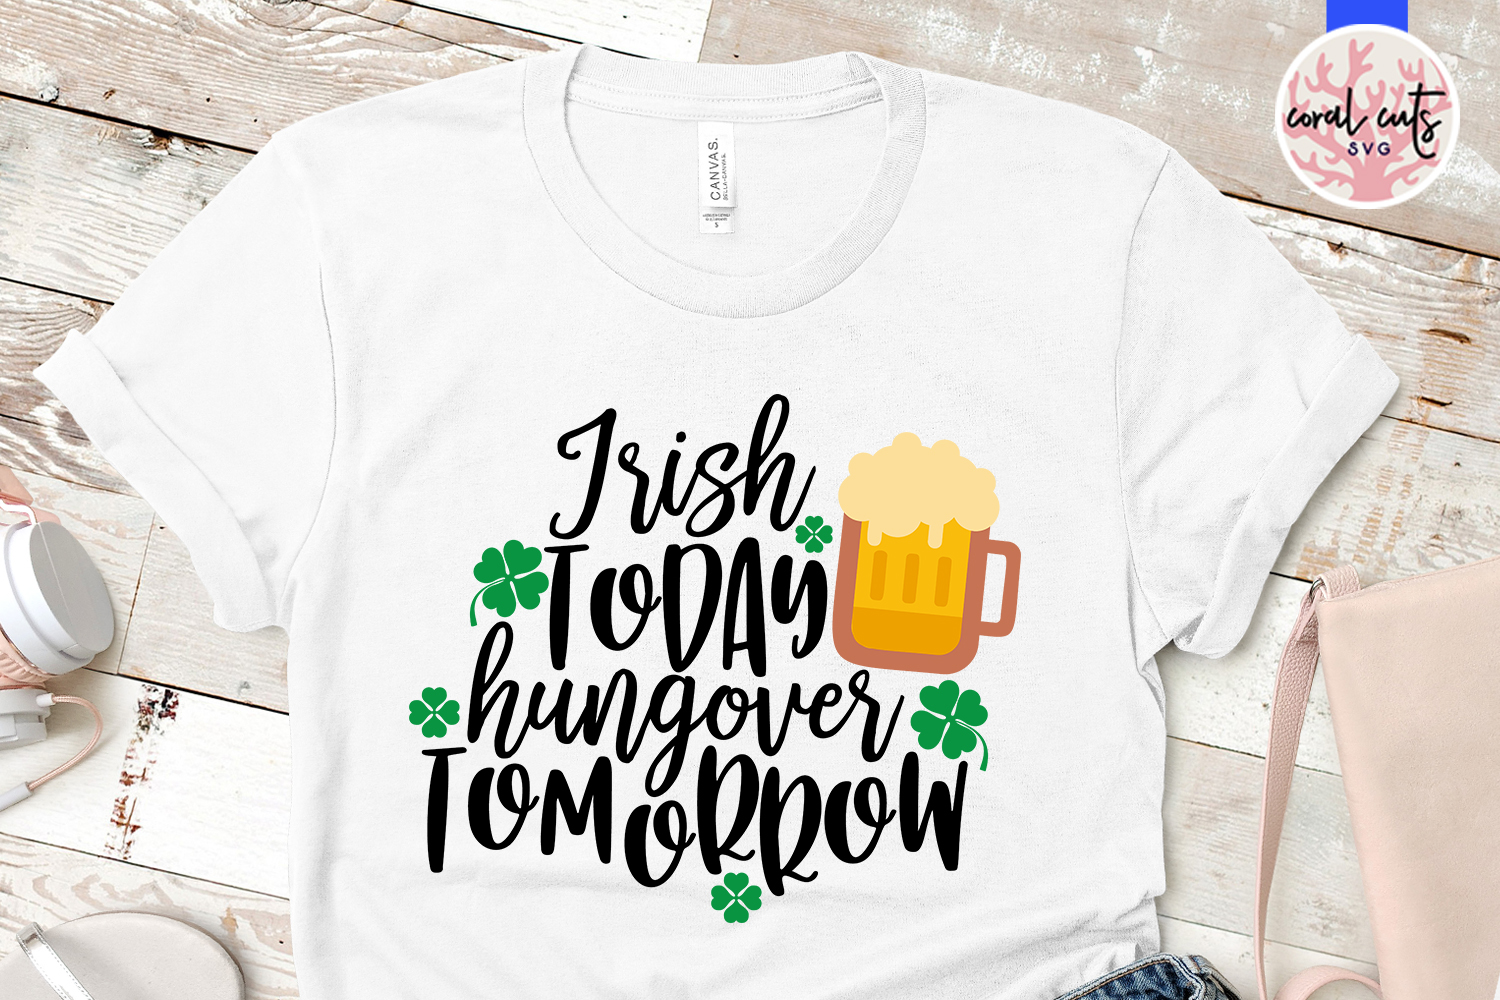 Irish today hungover tomorrow - St. Patrick's Day SVG EPS example image 2